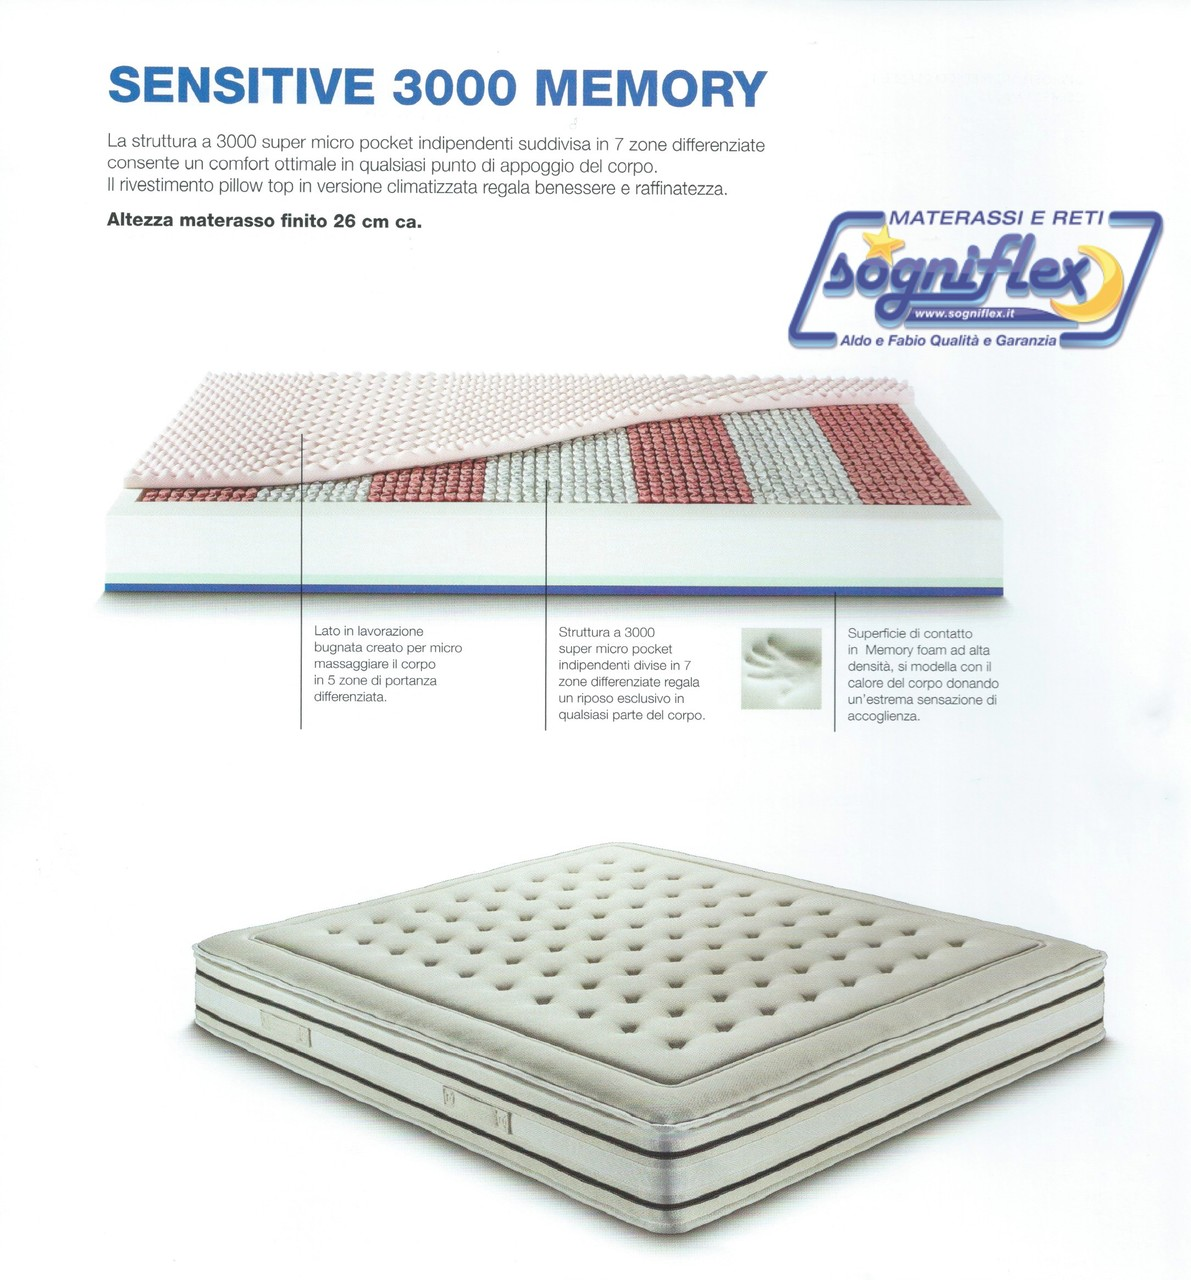 Materasso Sensitive 3000 Memory